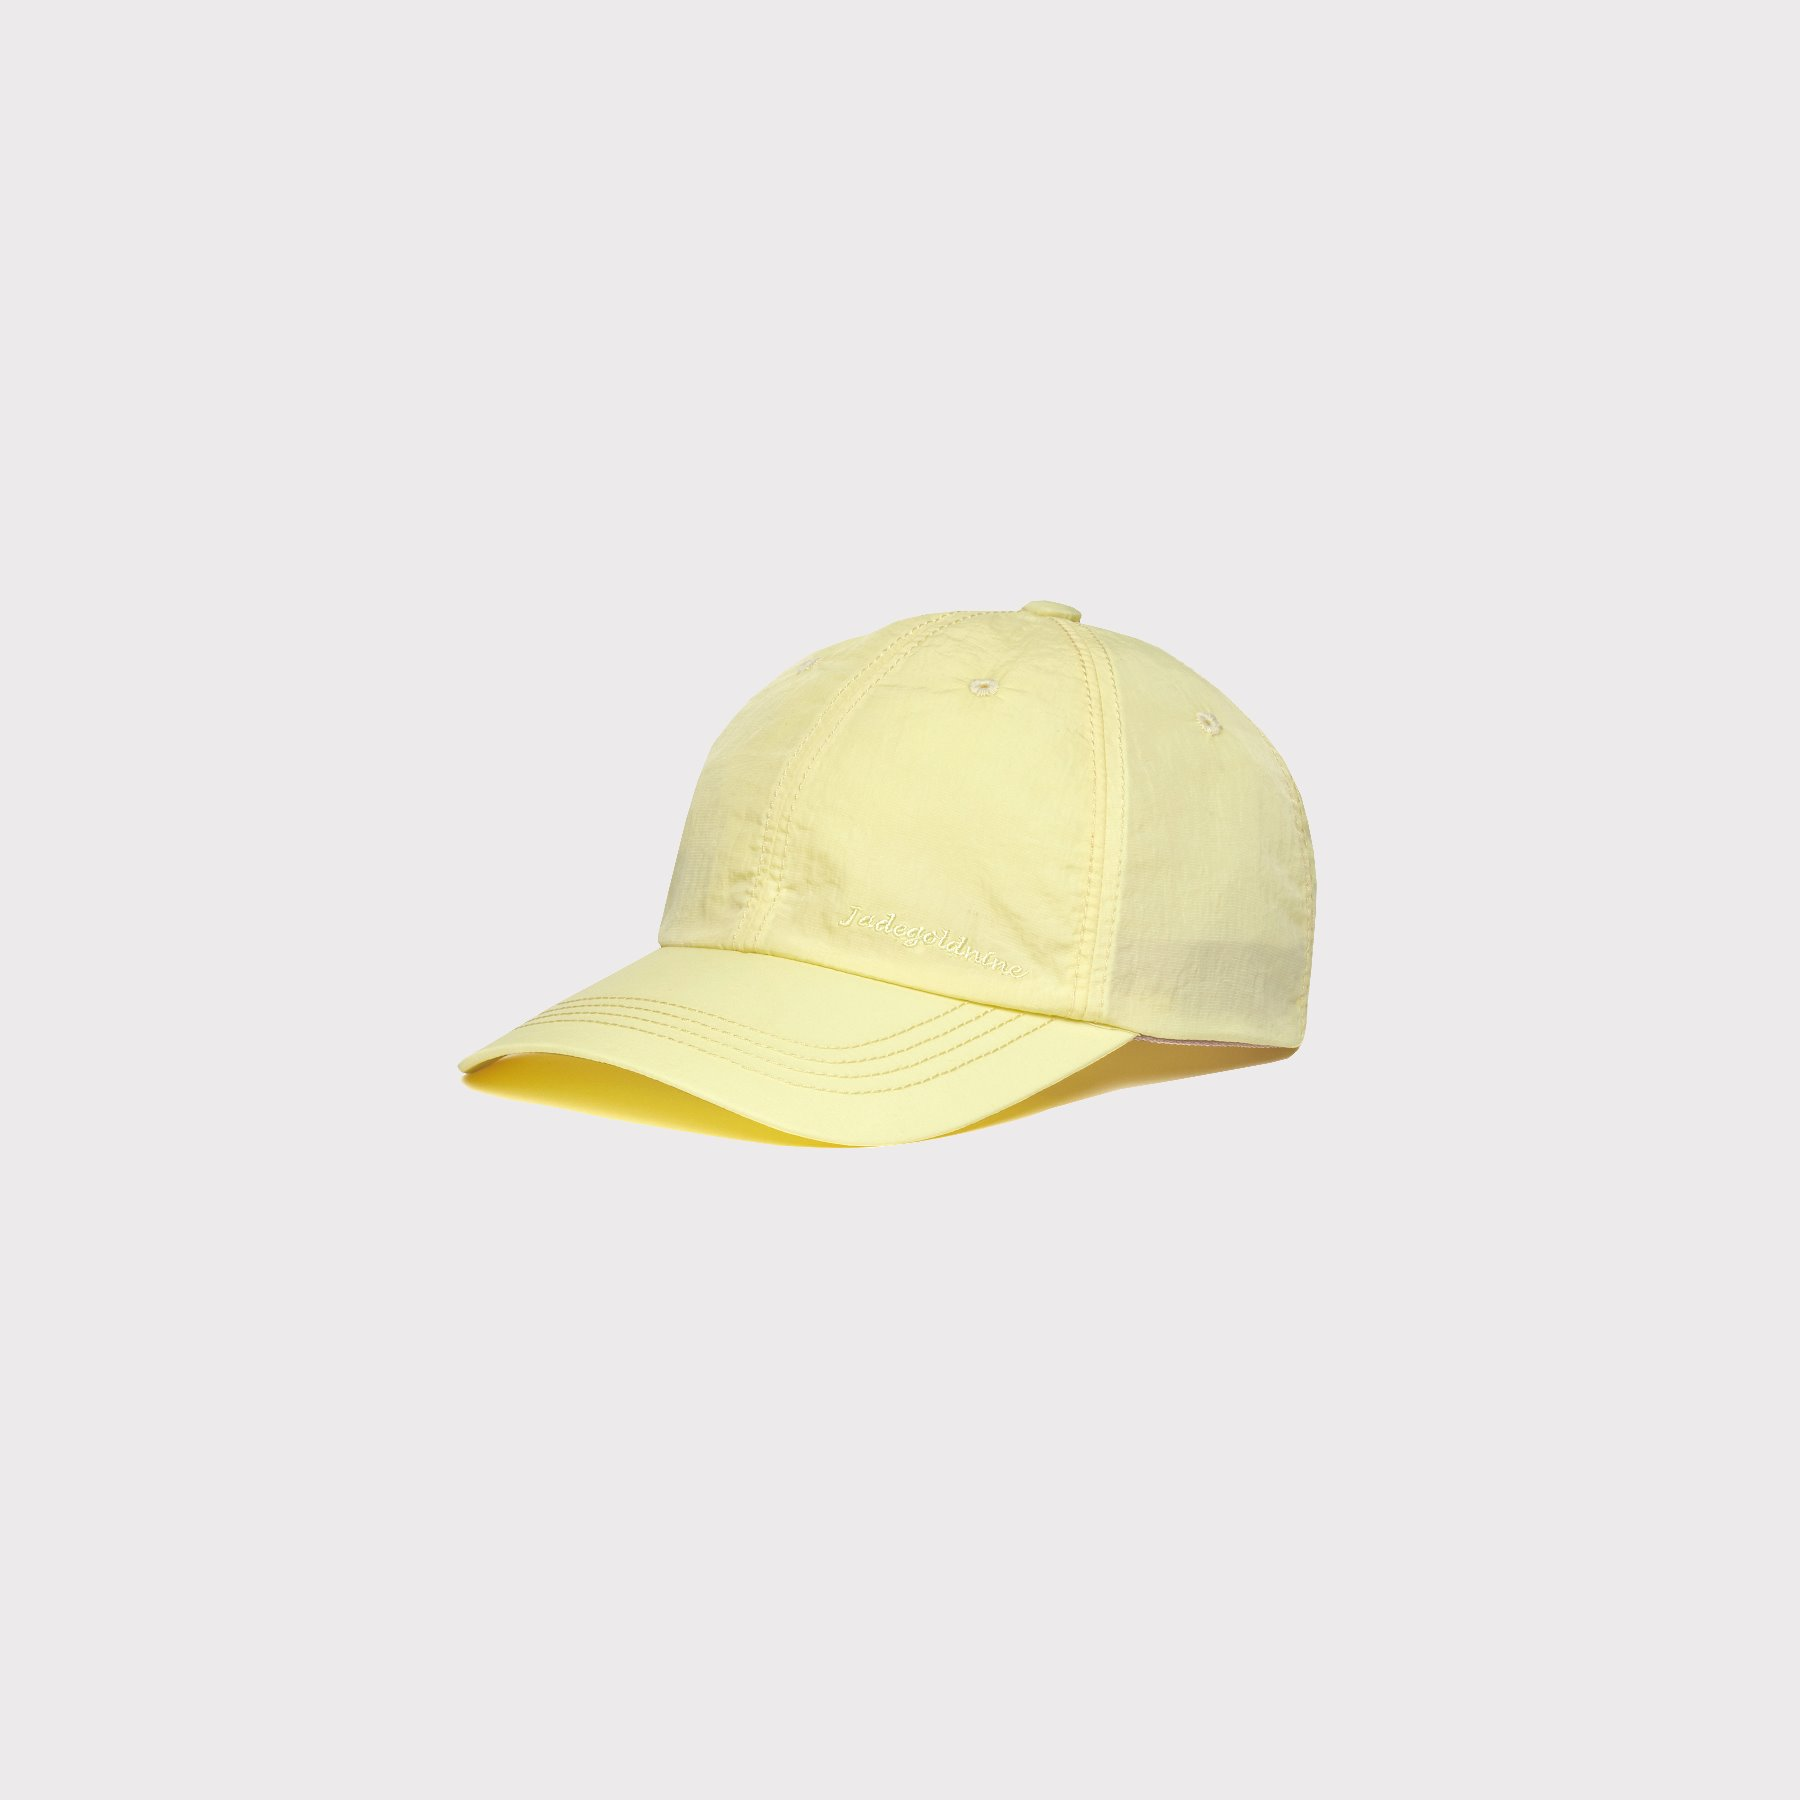 colorful cap (yellow)